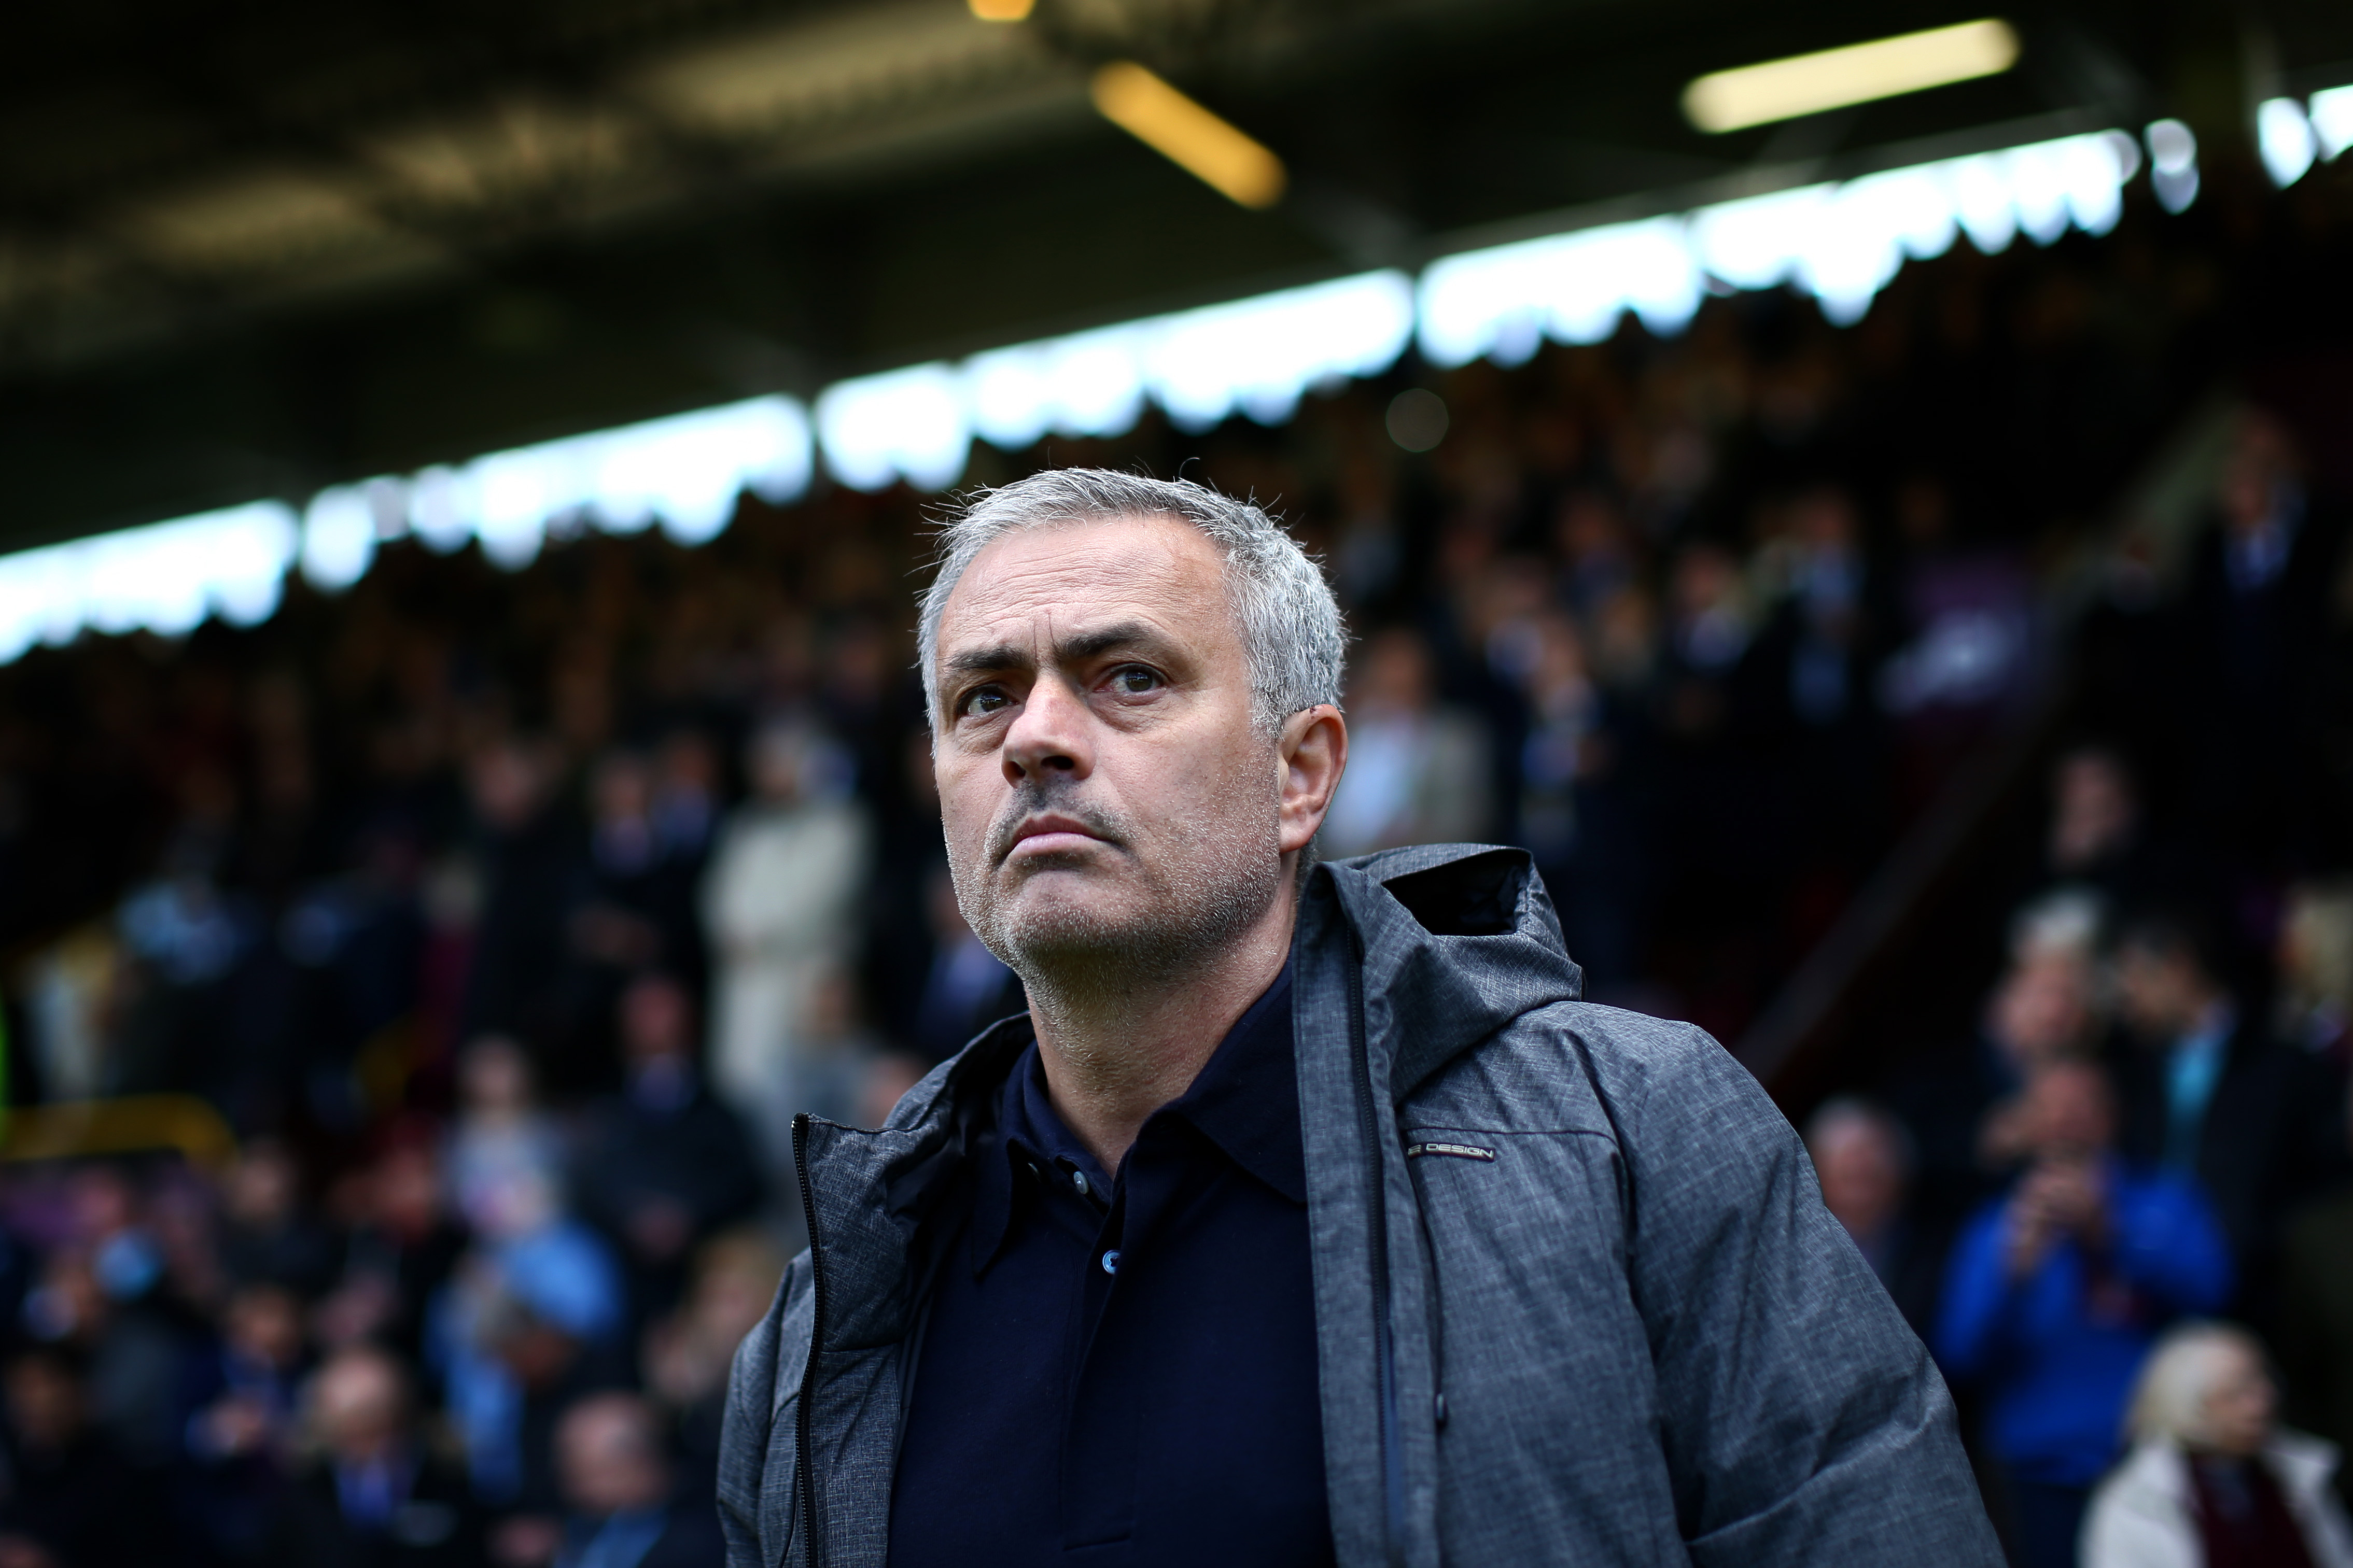 manchester united lineup , man united lineup, manchester united vs city lineups, united vs city starting xi , Manchester United-Manchester City tv channel, Manchester United-Manchester City start time